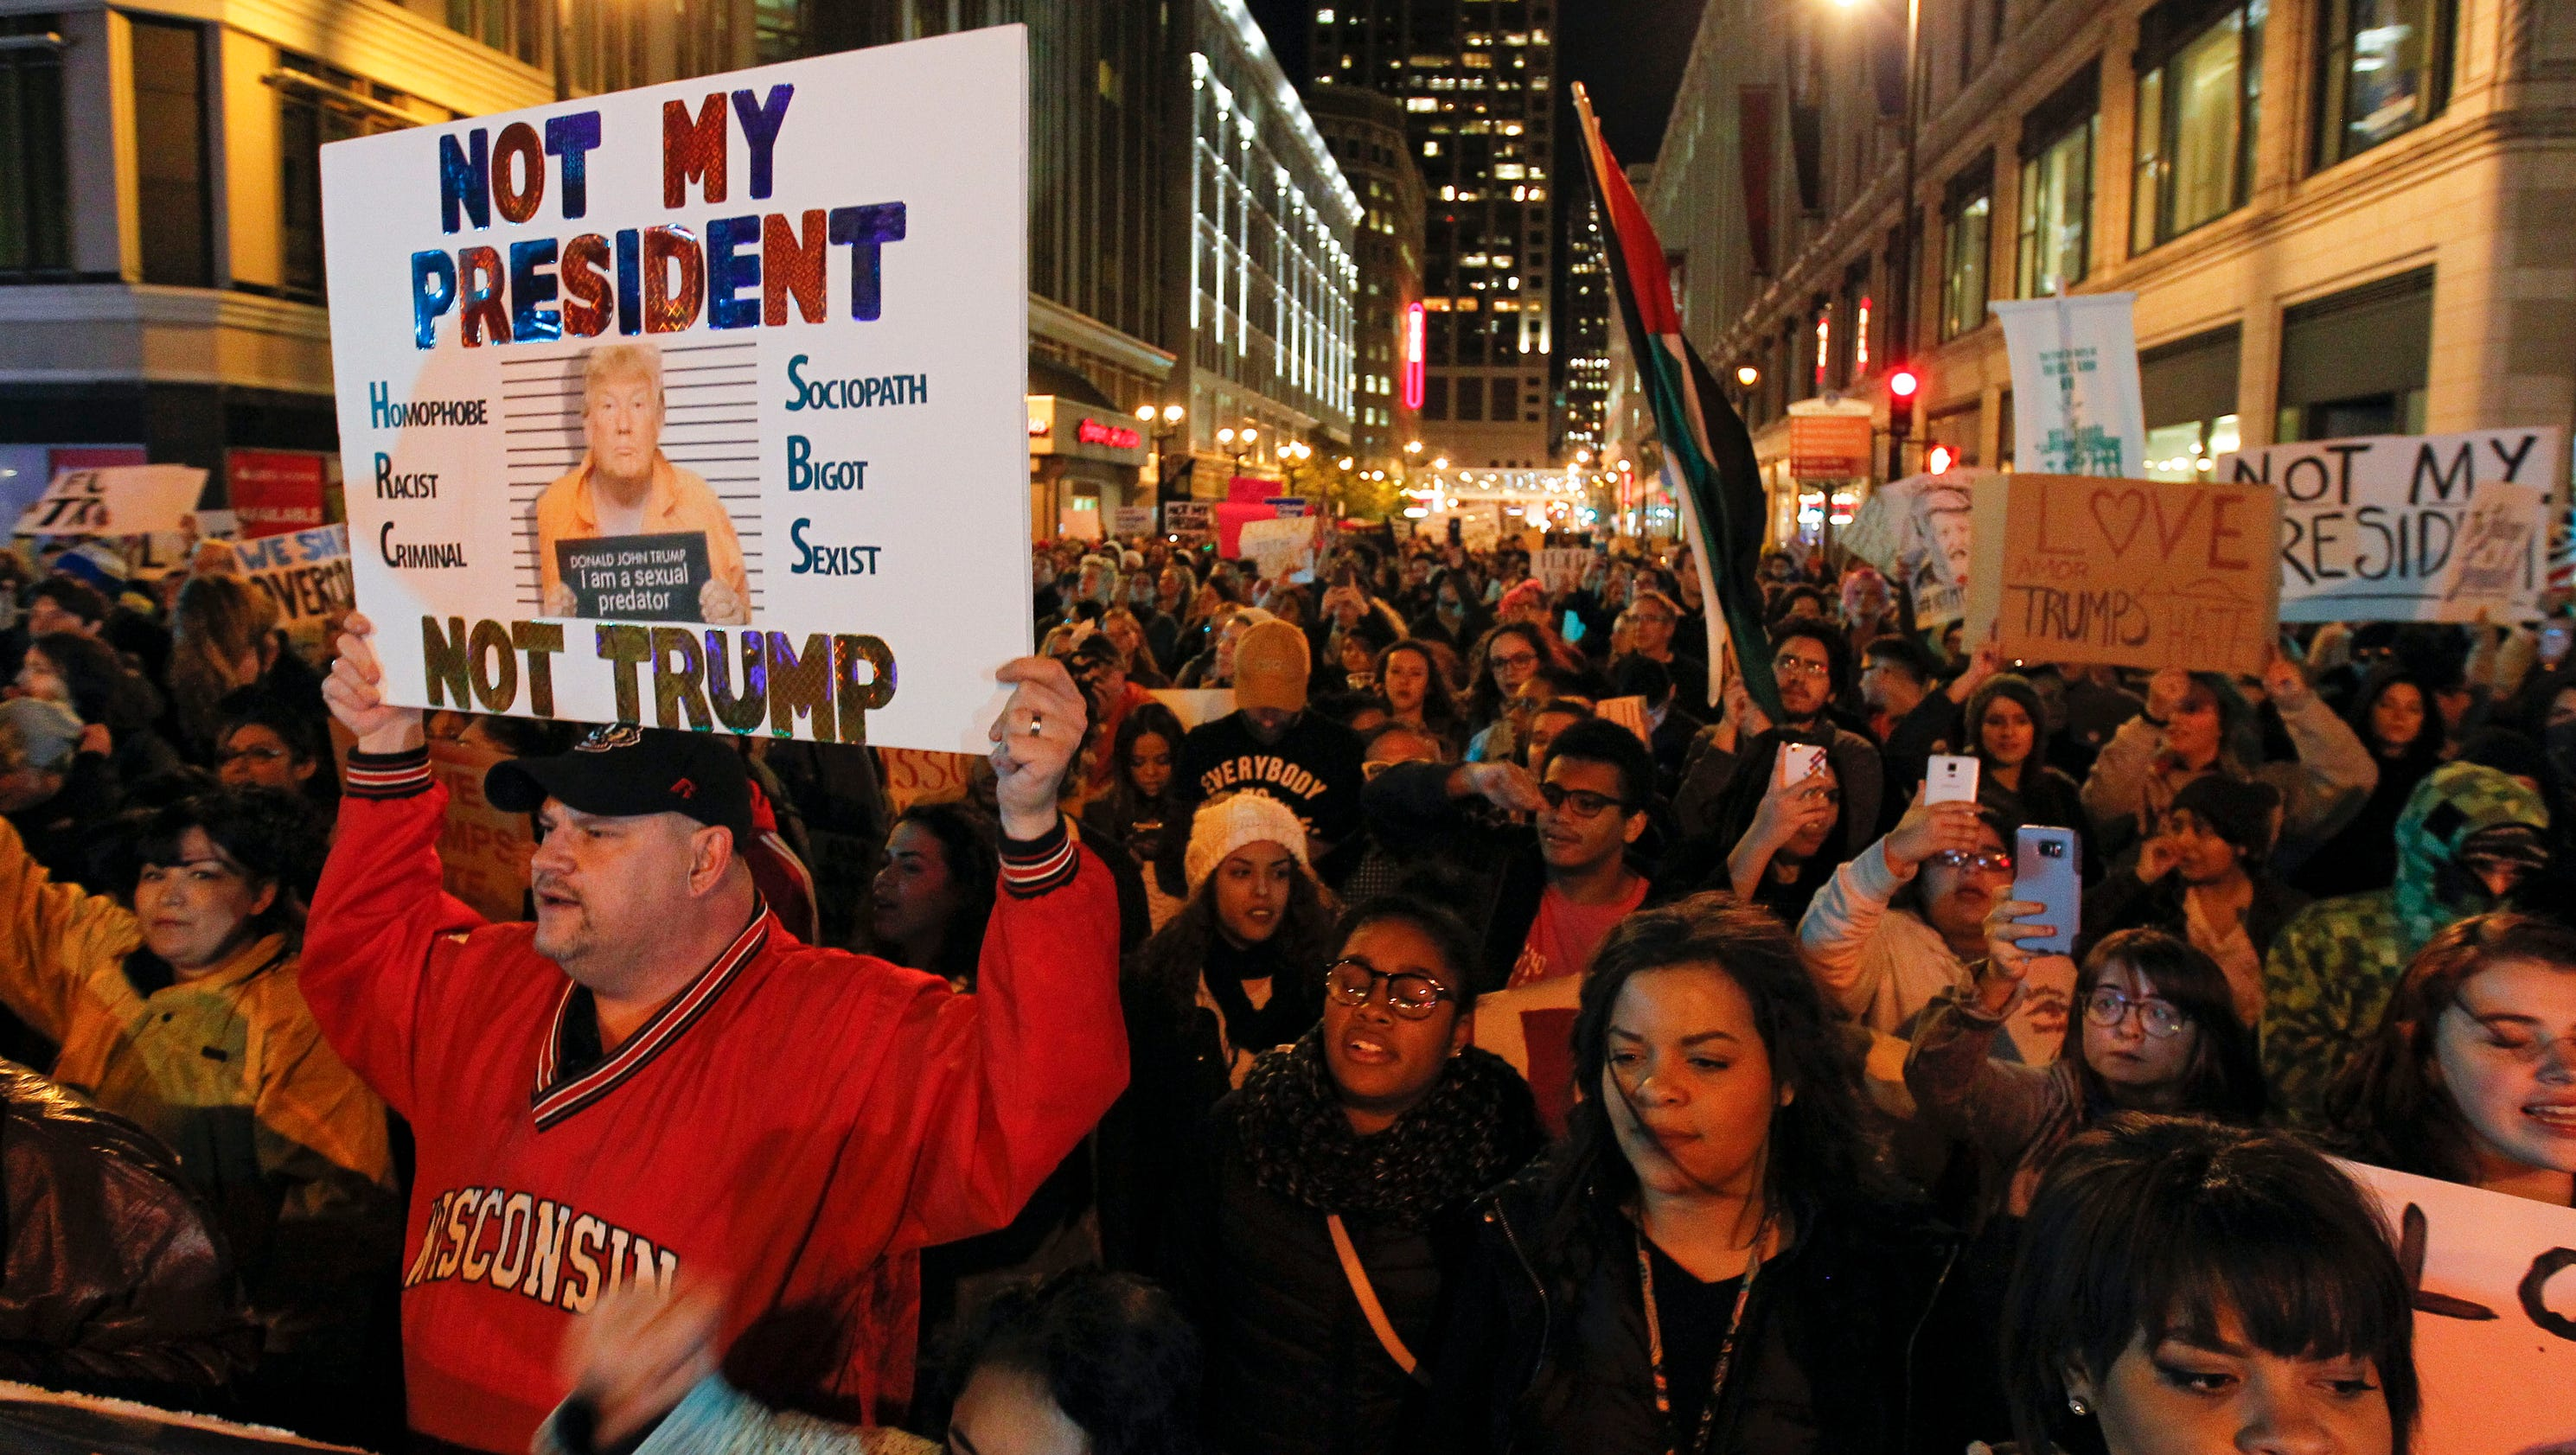 Protest News: Thousands Protest Trump In Milwaukee, Madison, Other Cities